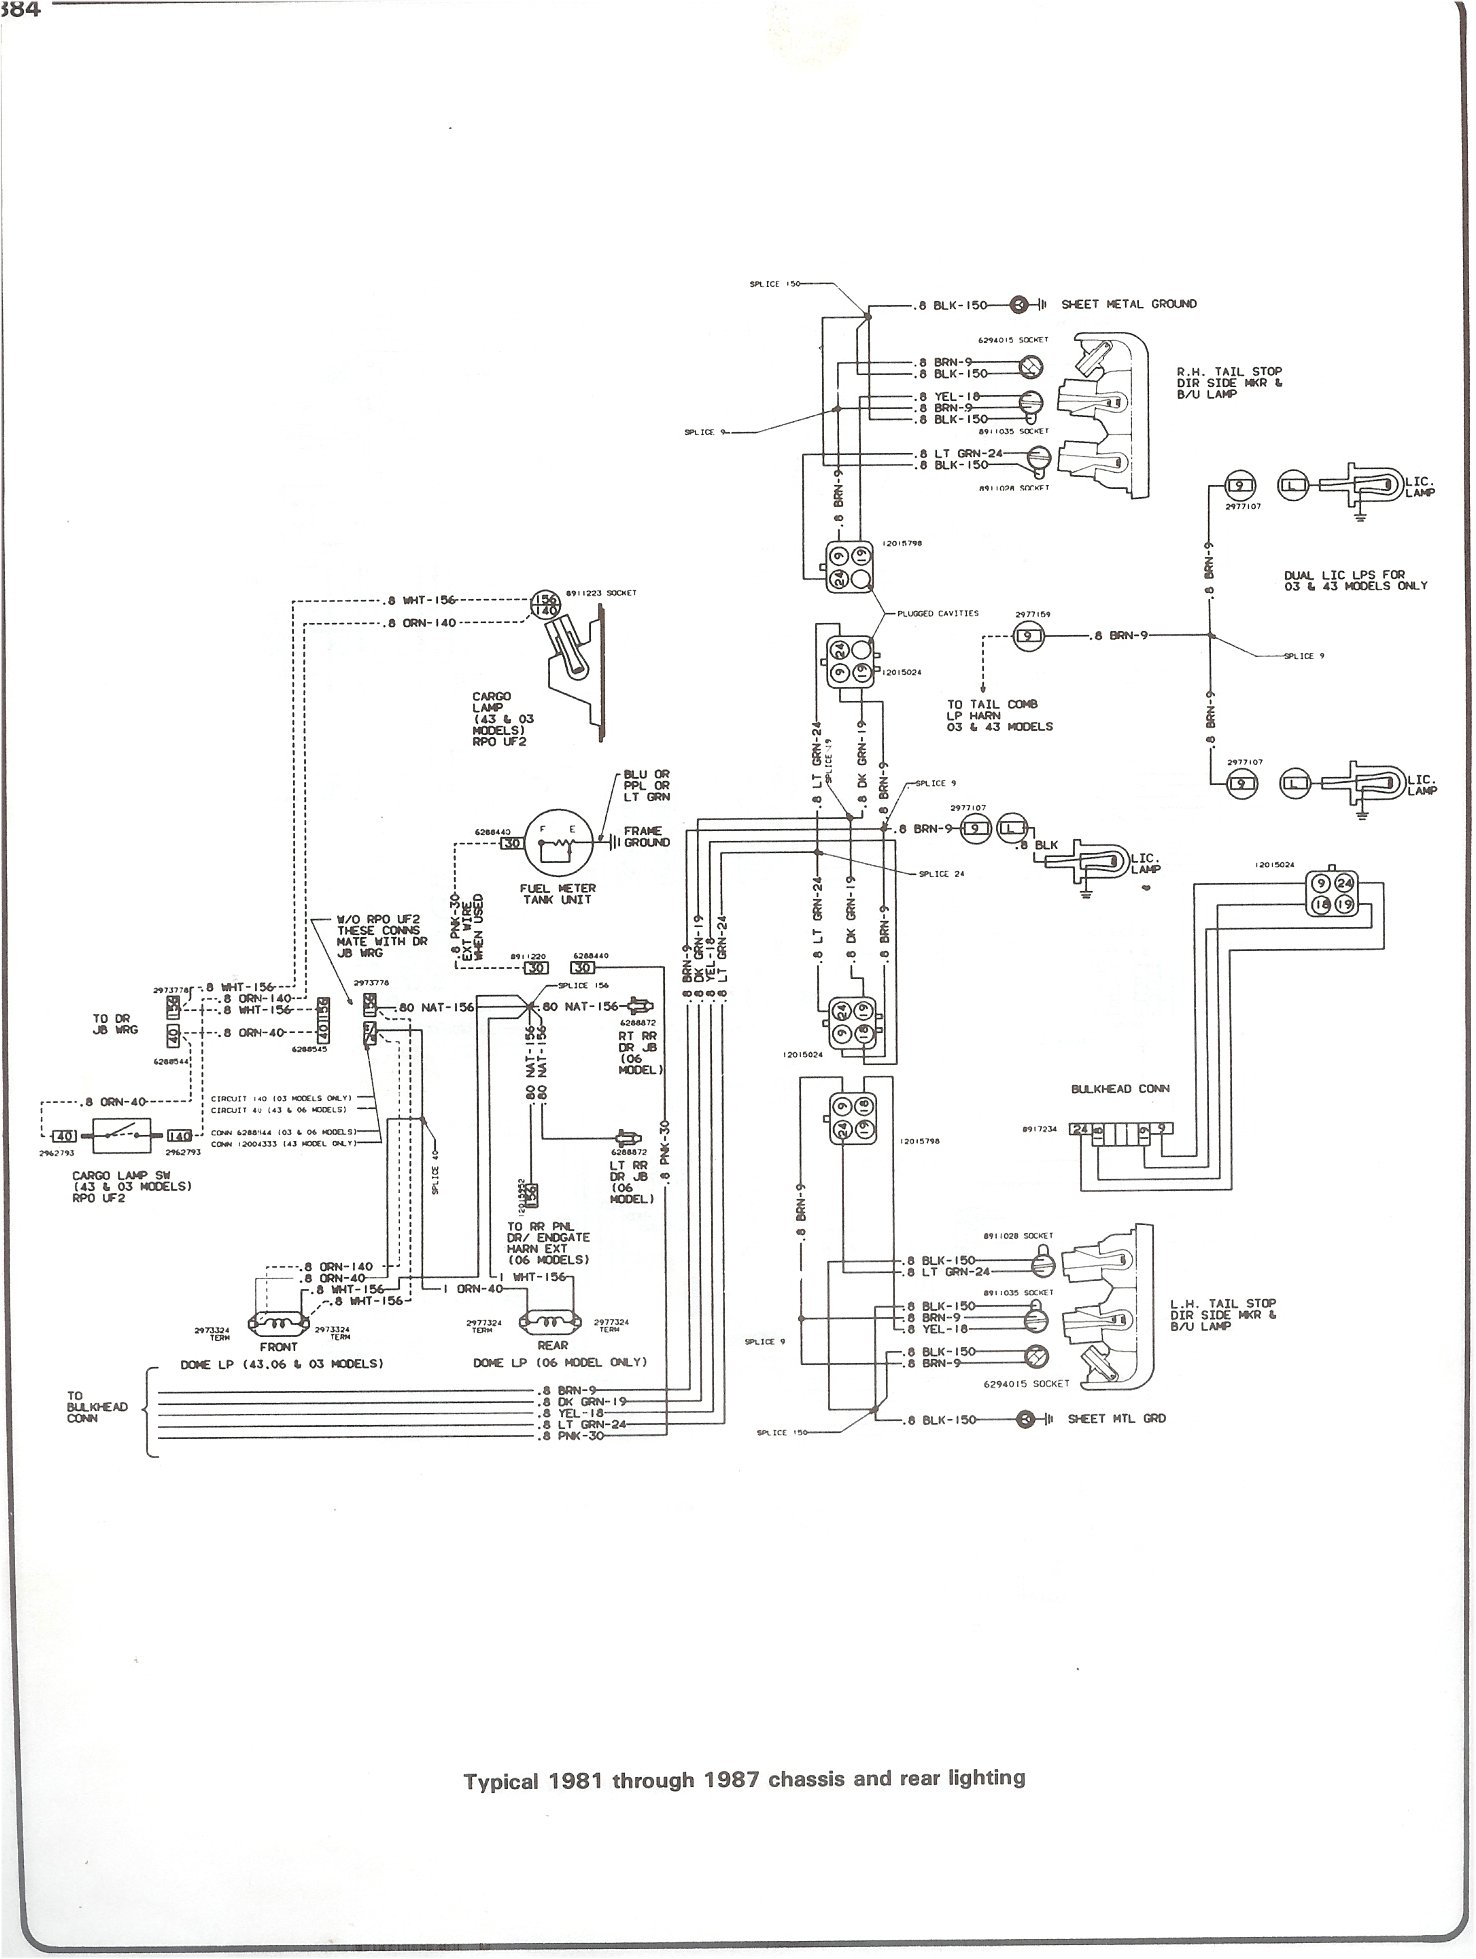 81 87_chass_rr_light complete 73 87 wiring diagrams 1985 chevy c10 fuse box diagram at creativeand.co